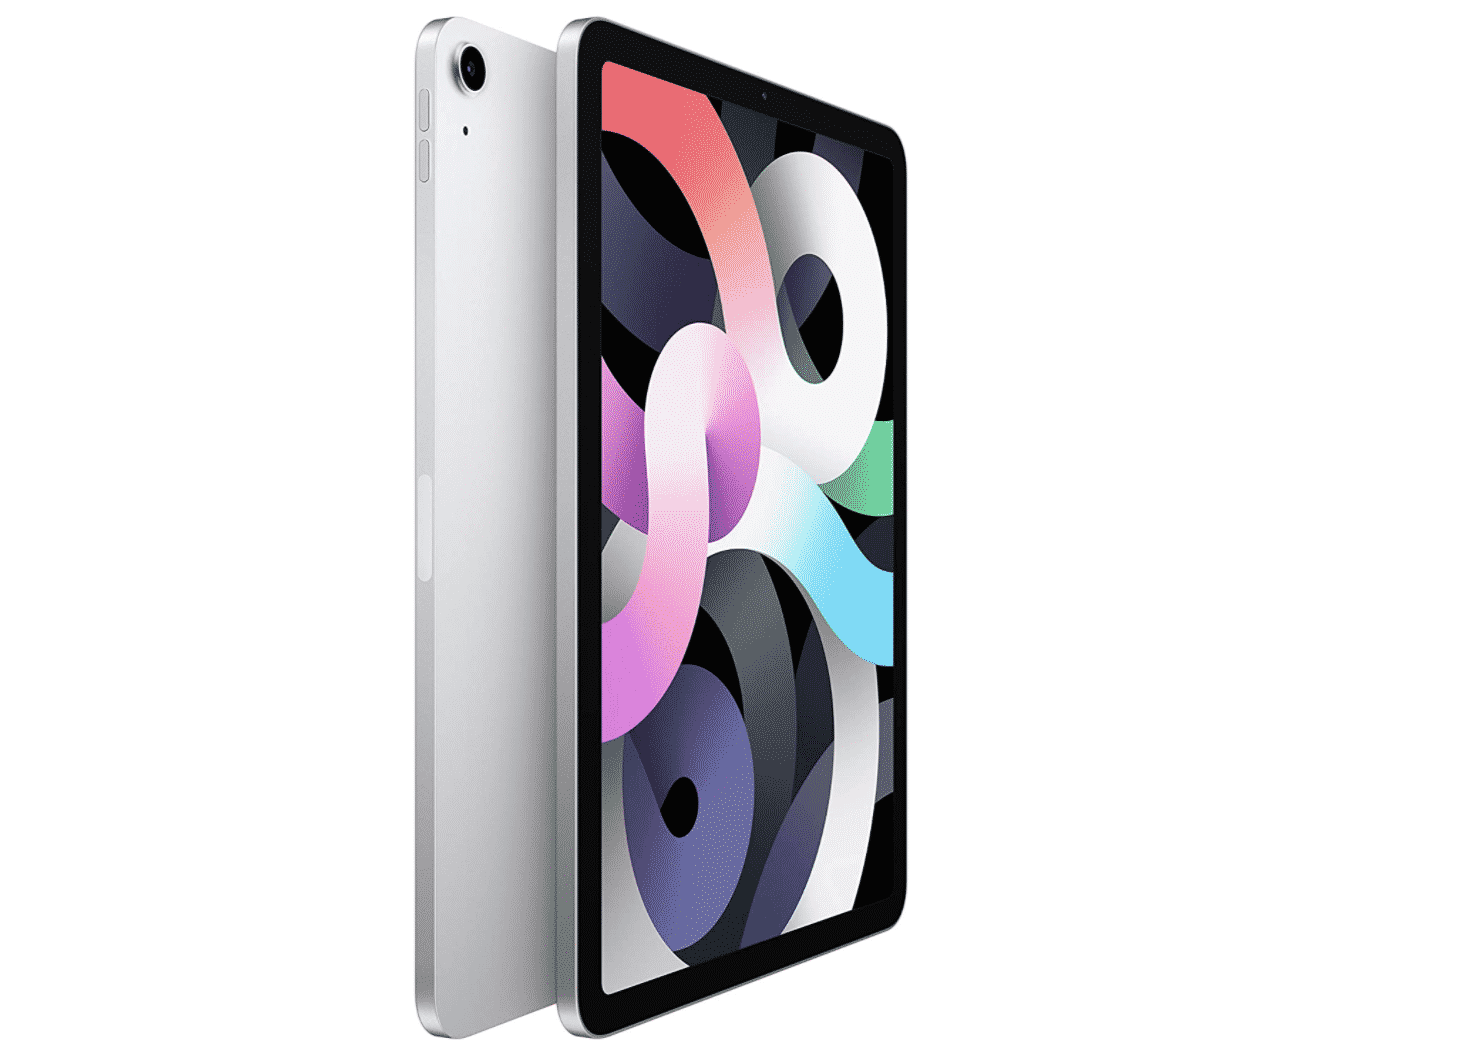 The newest iPad Air drops $60 in price